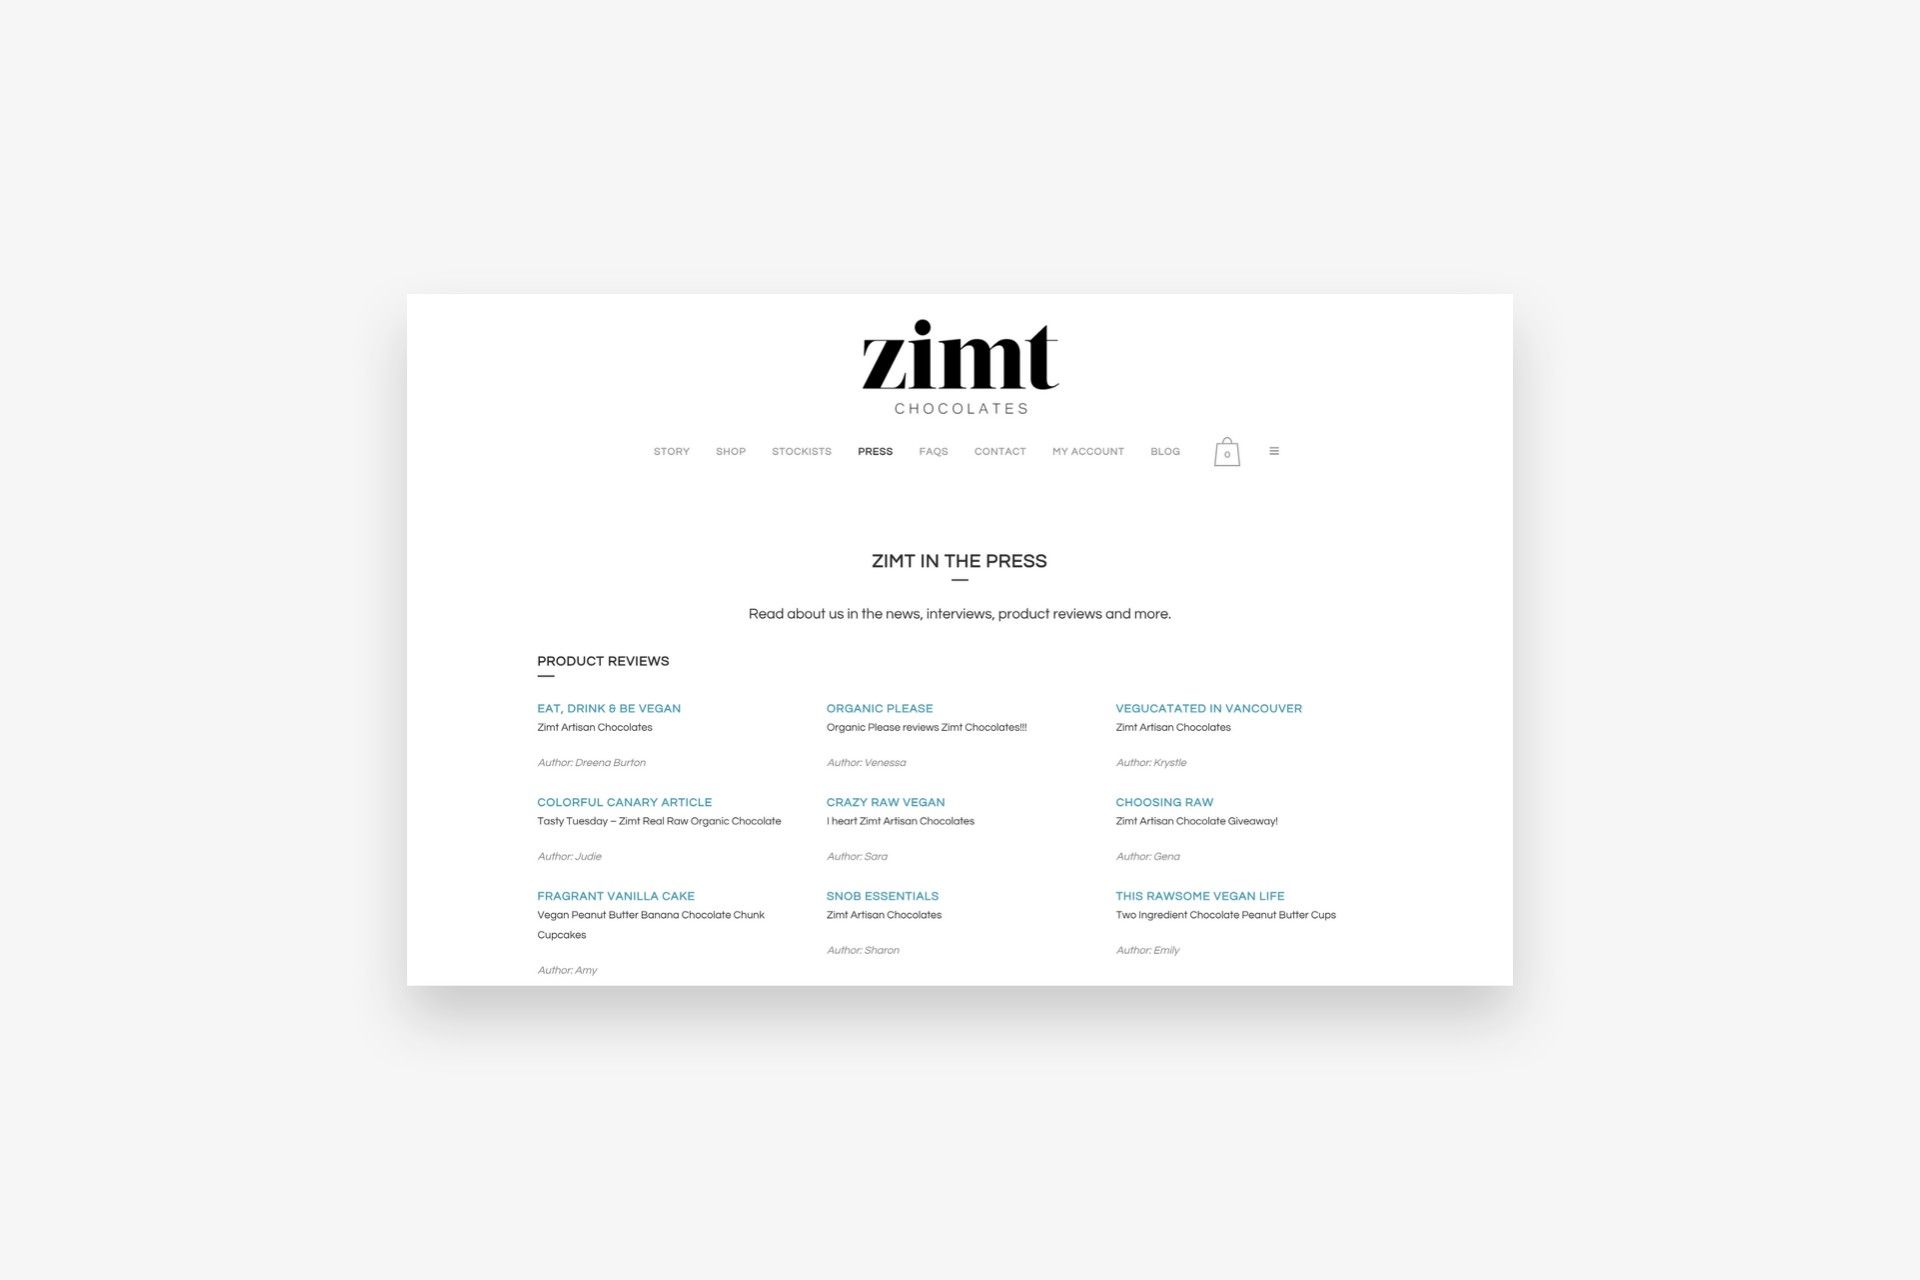 Zimt Chocolates Press Page